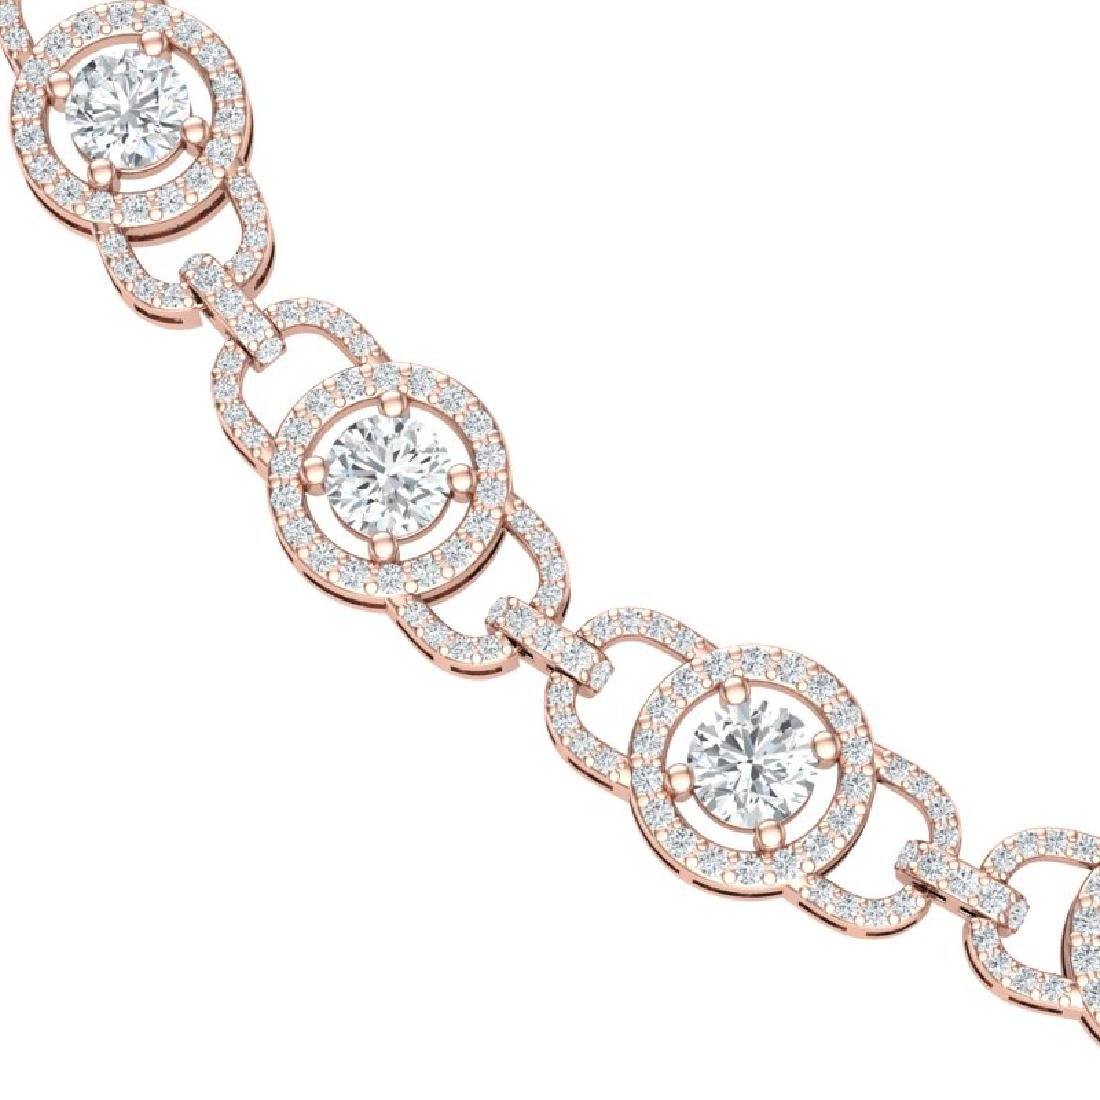 25 CTW Certified SI/I Diamond Halo Necklace 18K Rose